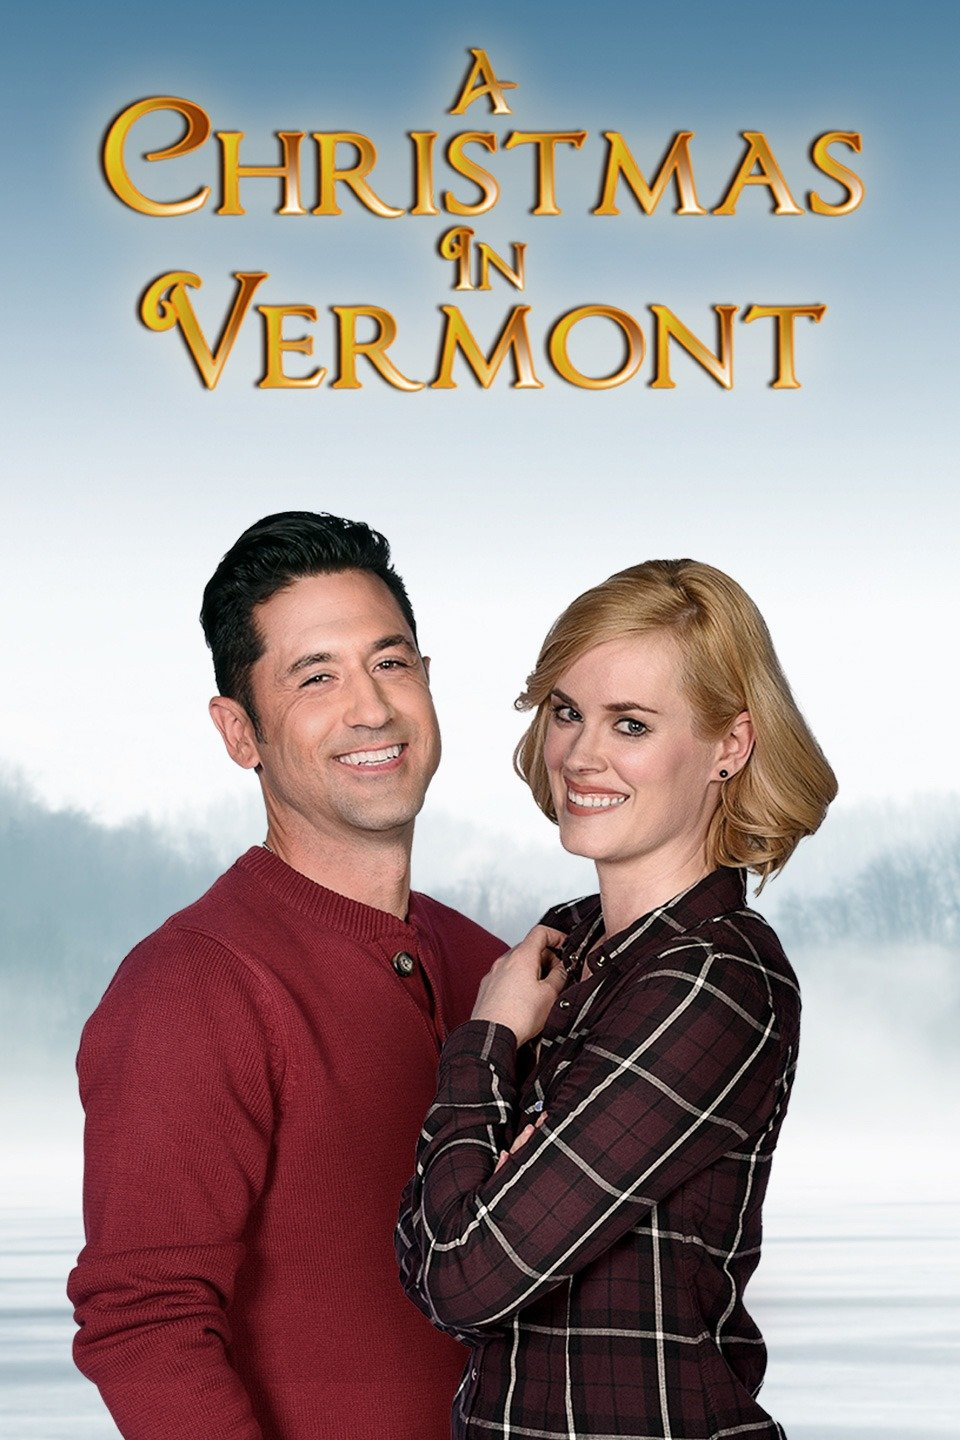 A Christmas In Vermont.Christmas Movies Filmed In East Aurora Vidlers 5 10